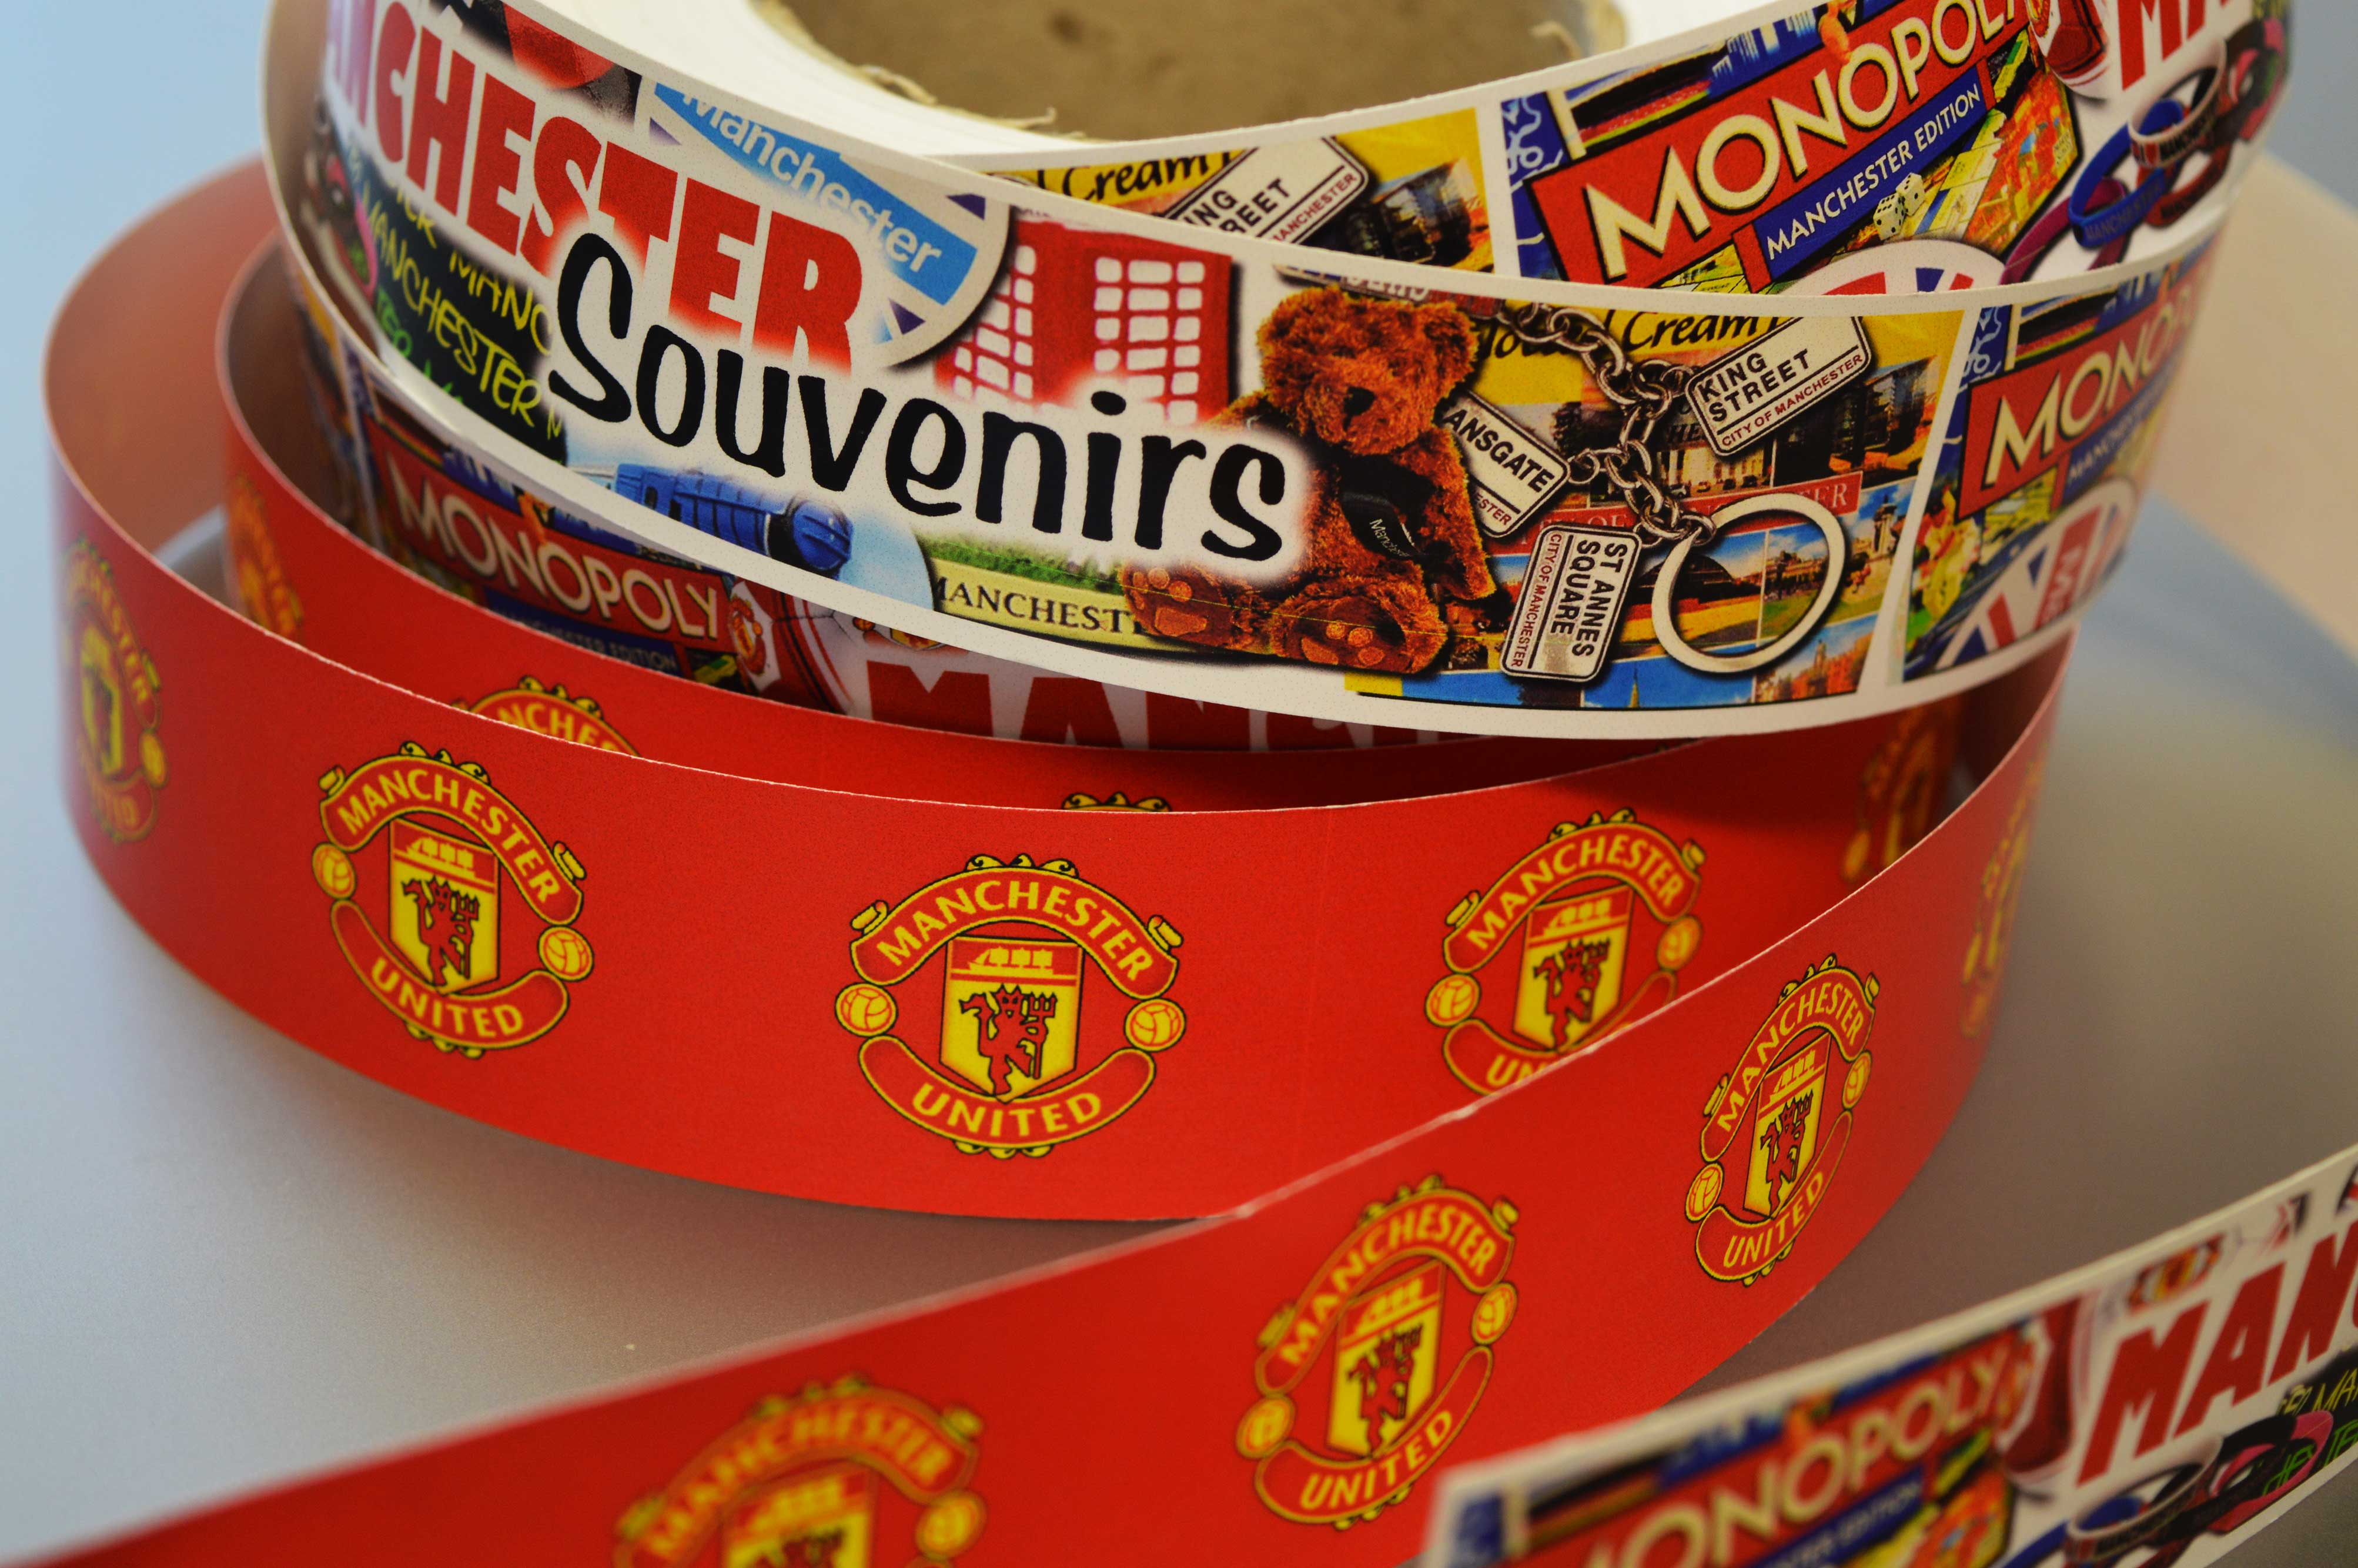 Shelf Edge rolls for Manchester United